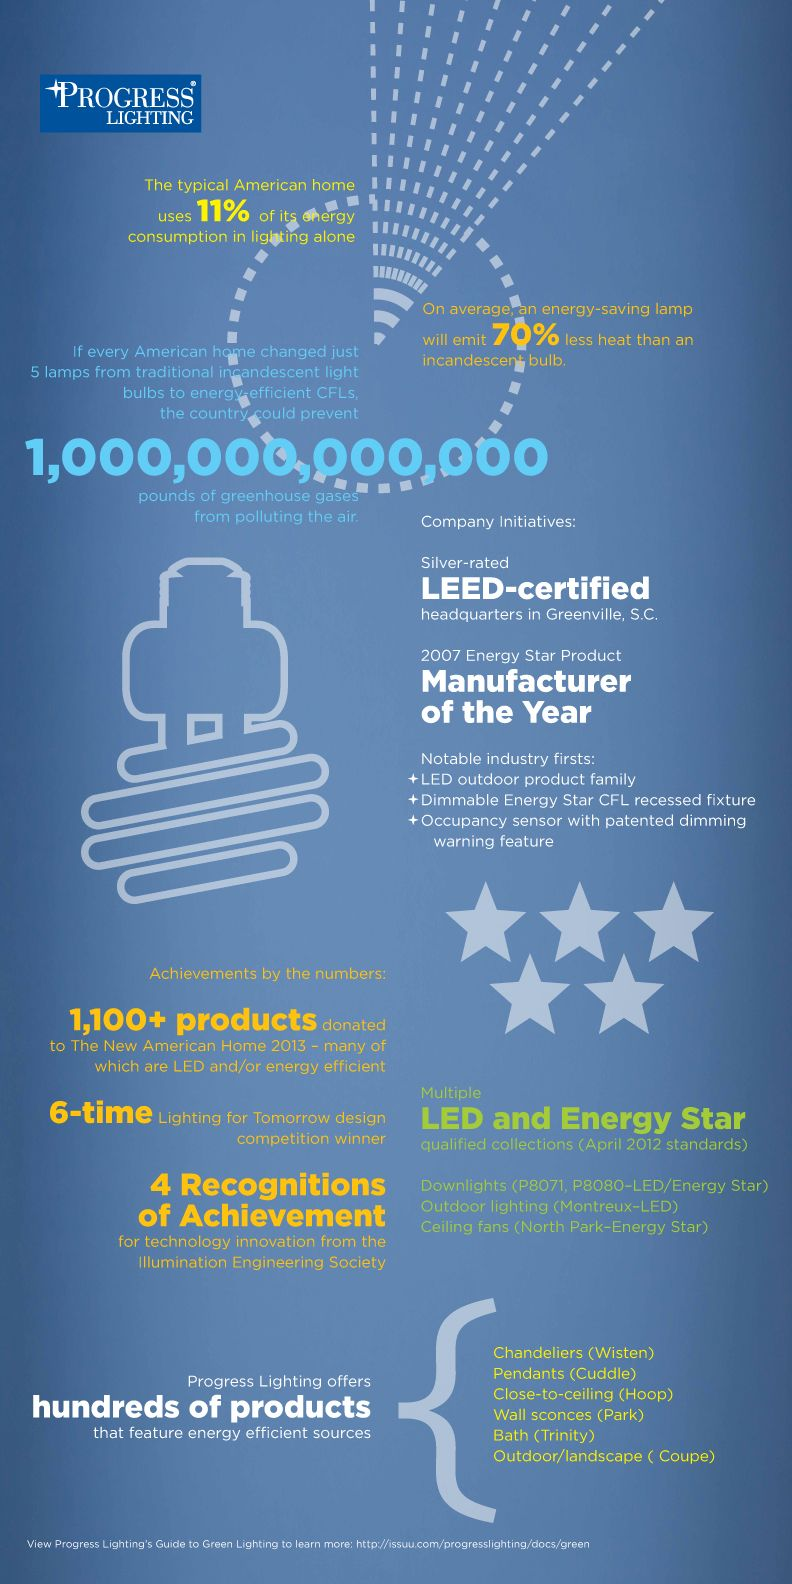 The Typical American Home Uses 11 Of Its Energy Consumption In Lighting Alone Progress Lighting Addresses Energy Conservation Save Energy Energy Saving Lamp